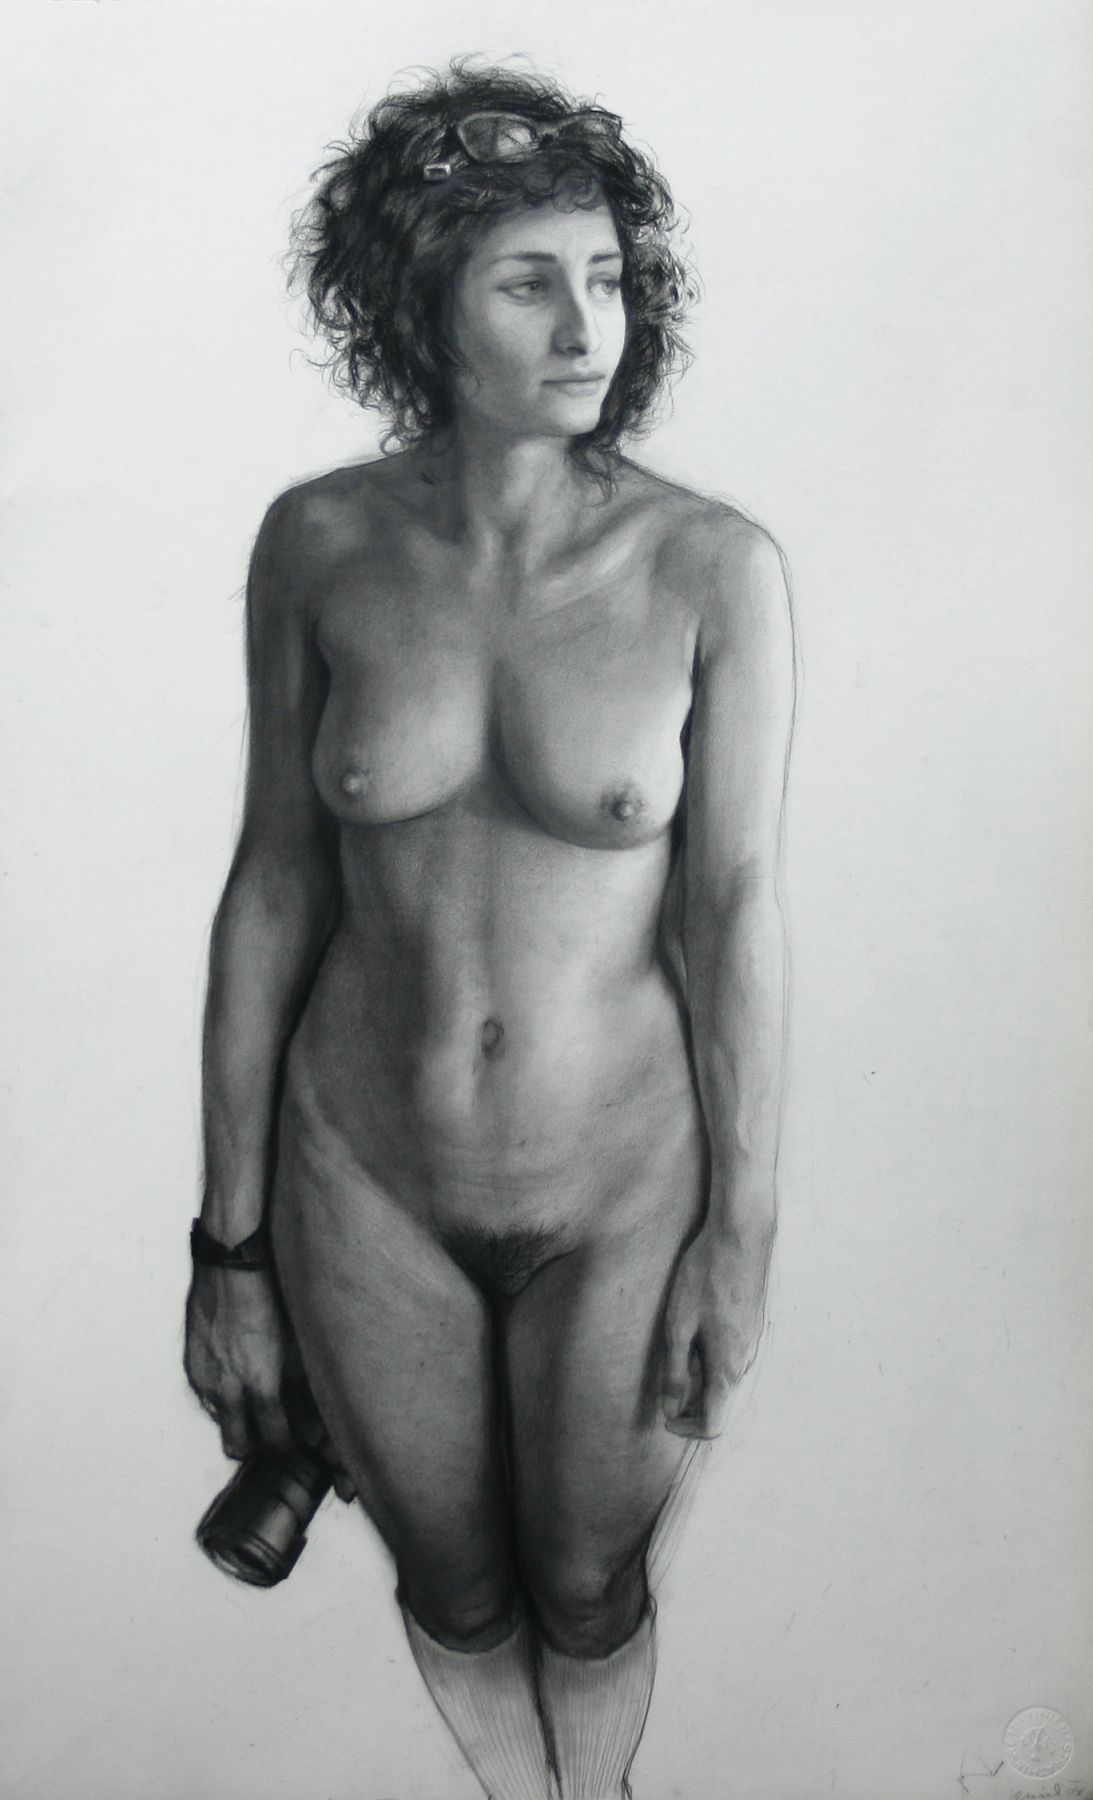 Steven Assael, Jordana with Camera, 2008, graphite and crayon on paper, 21 1/4 x 13 3/8 inches